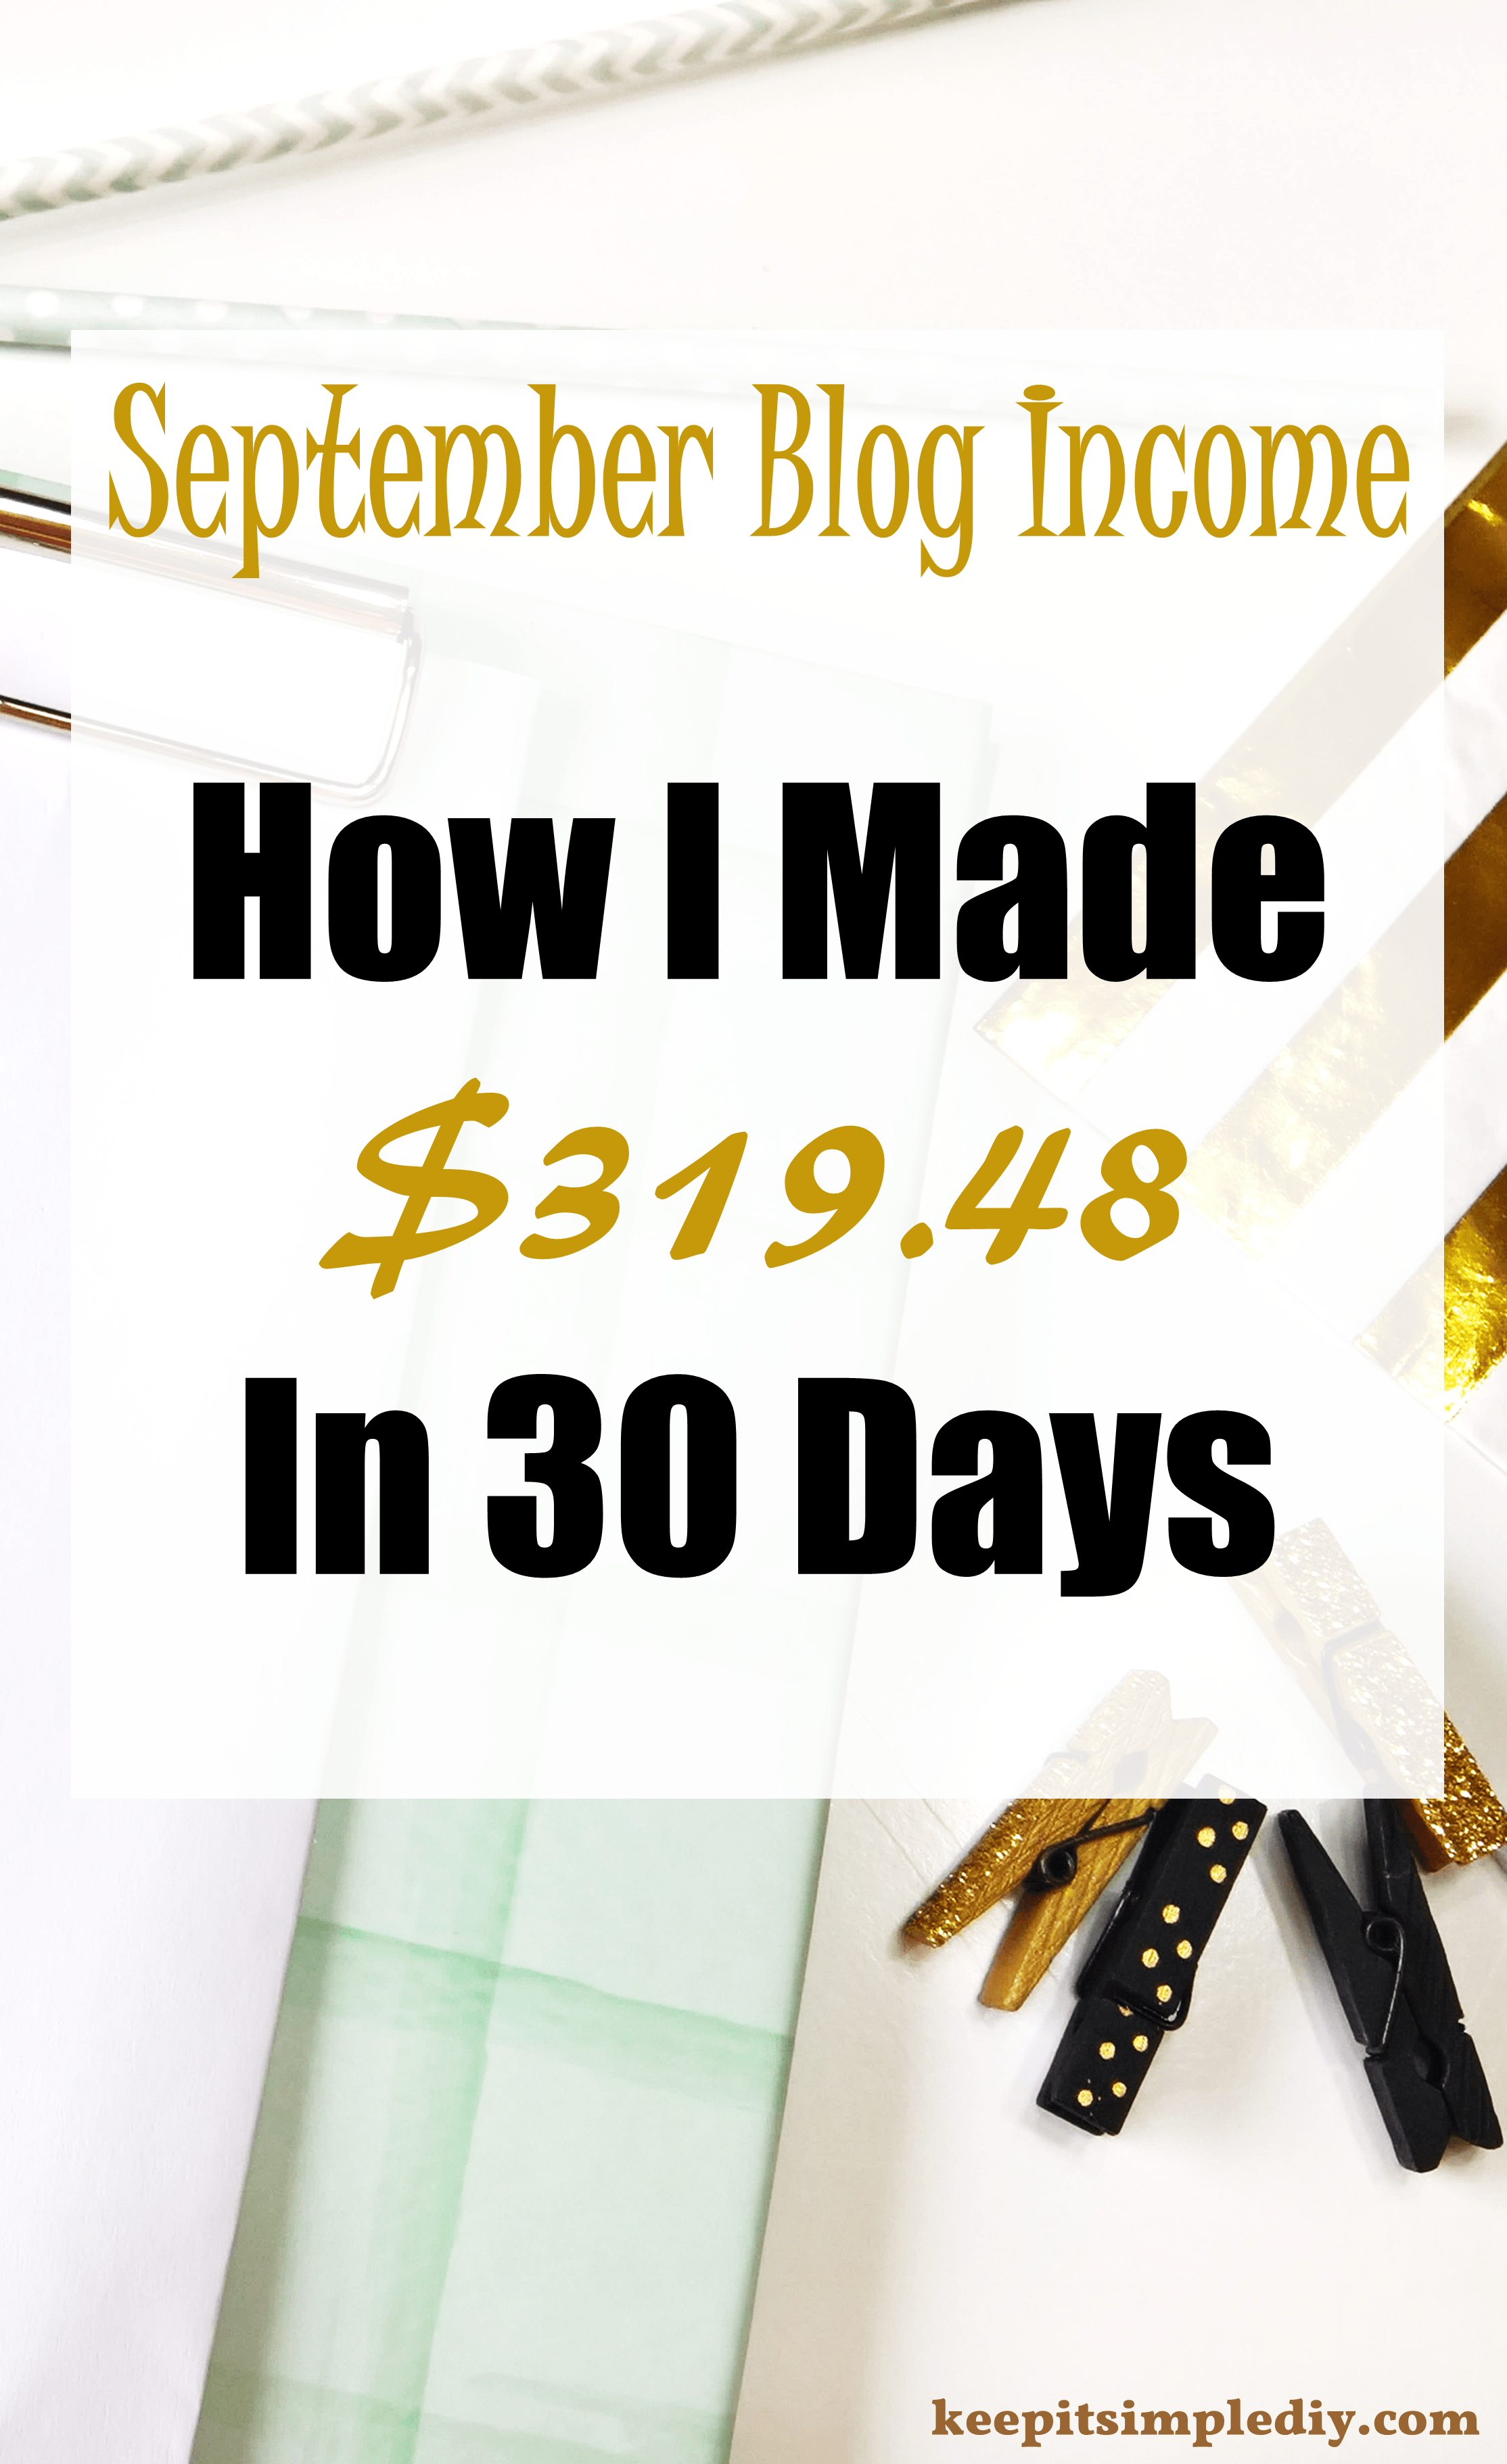 September 2017 Blog Income Report